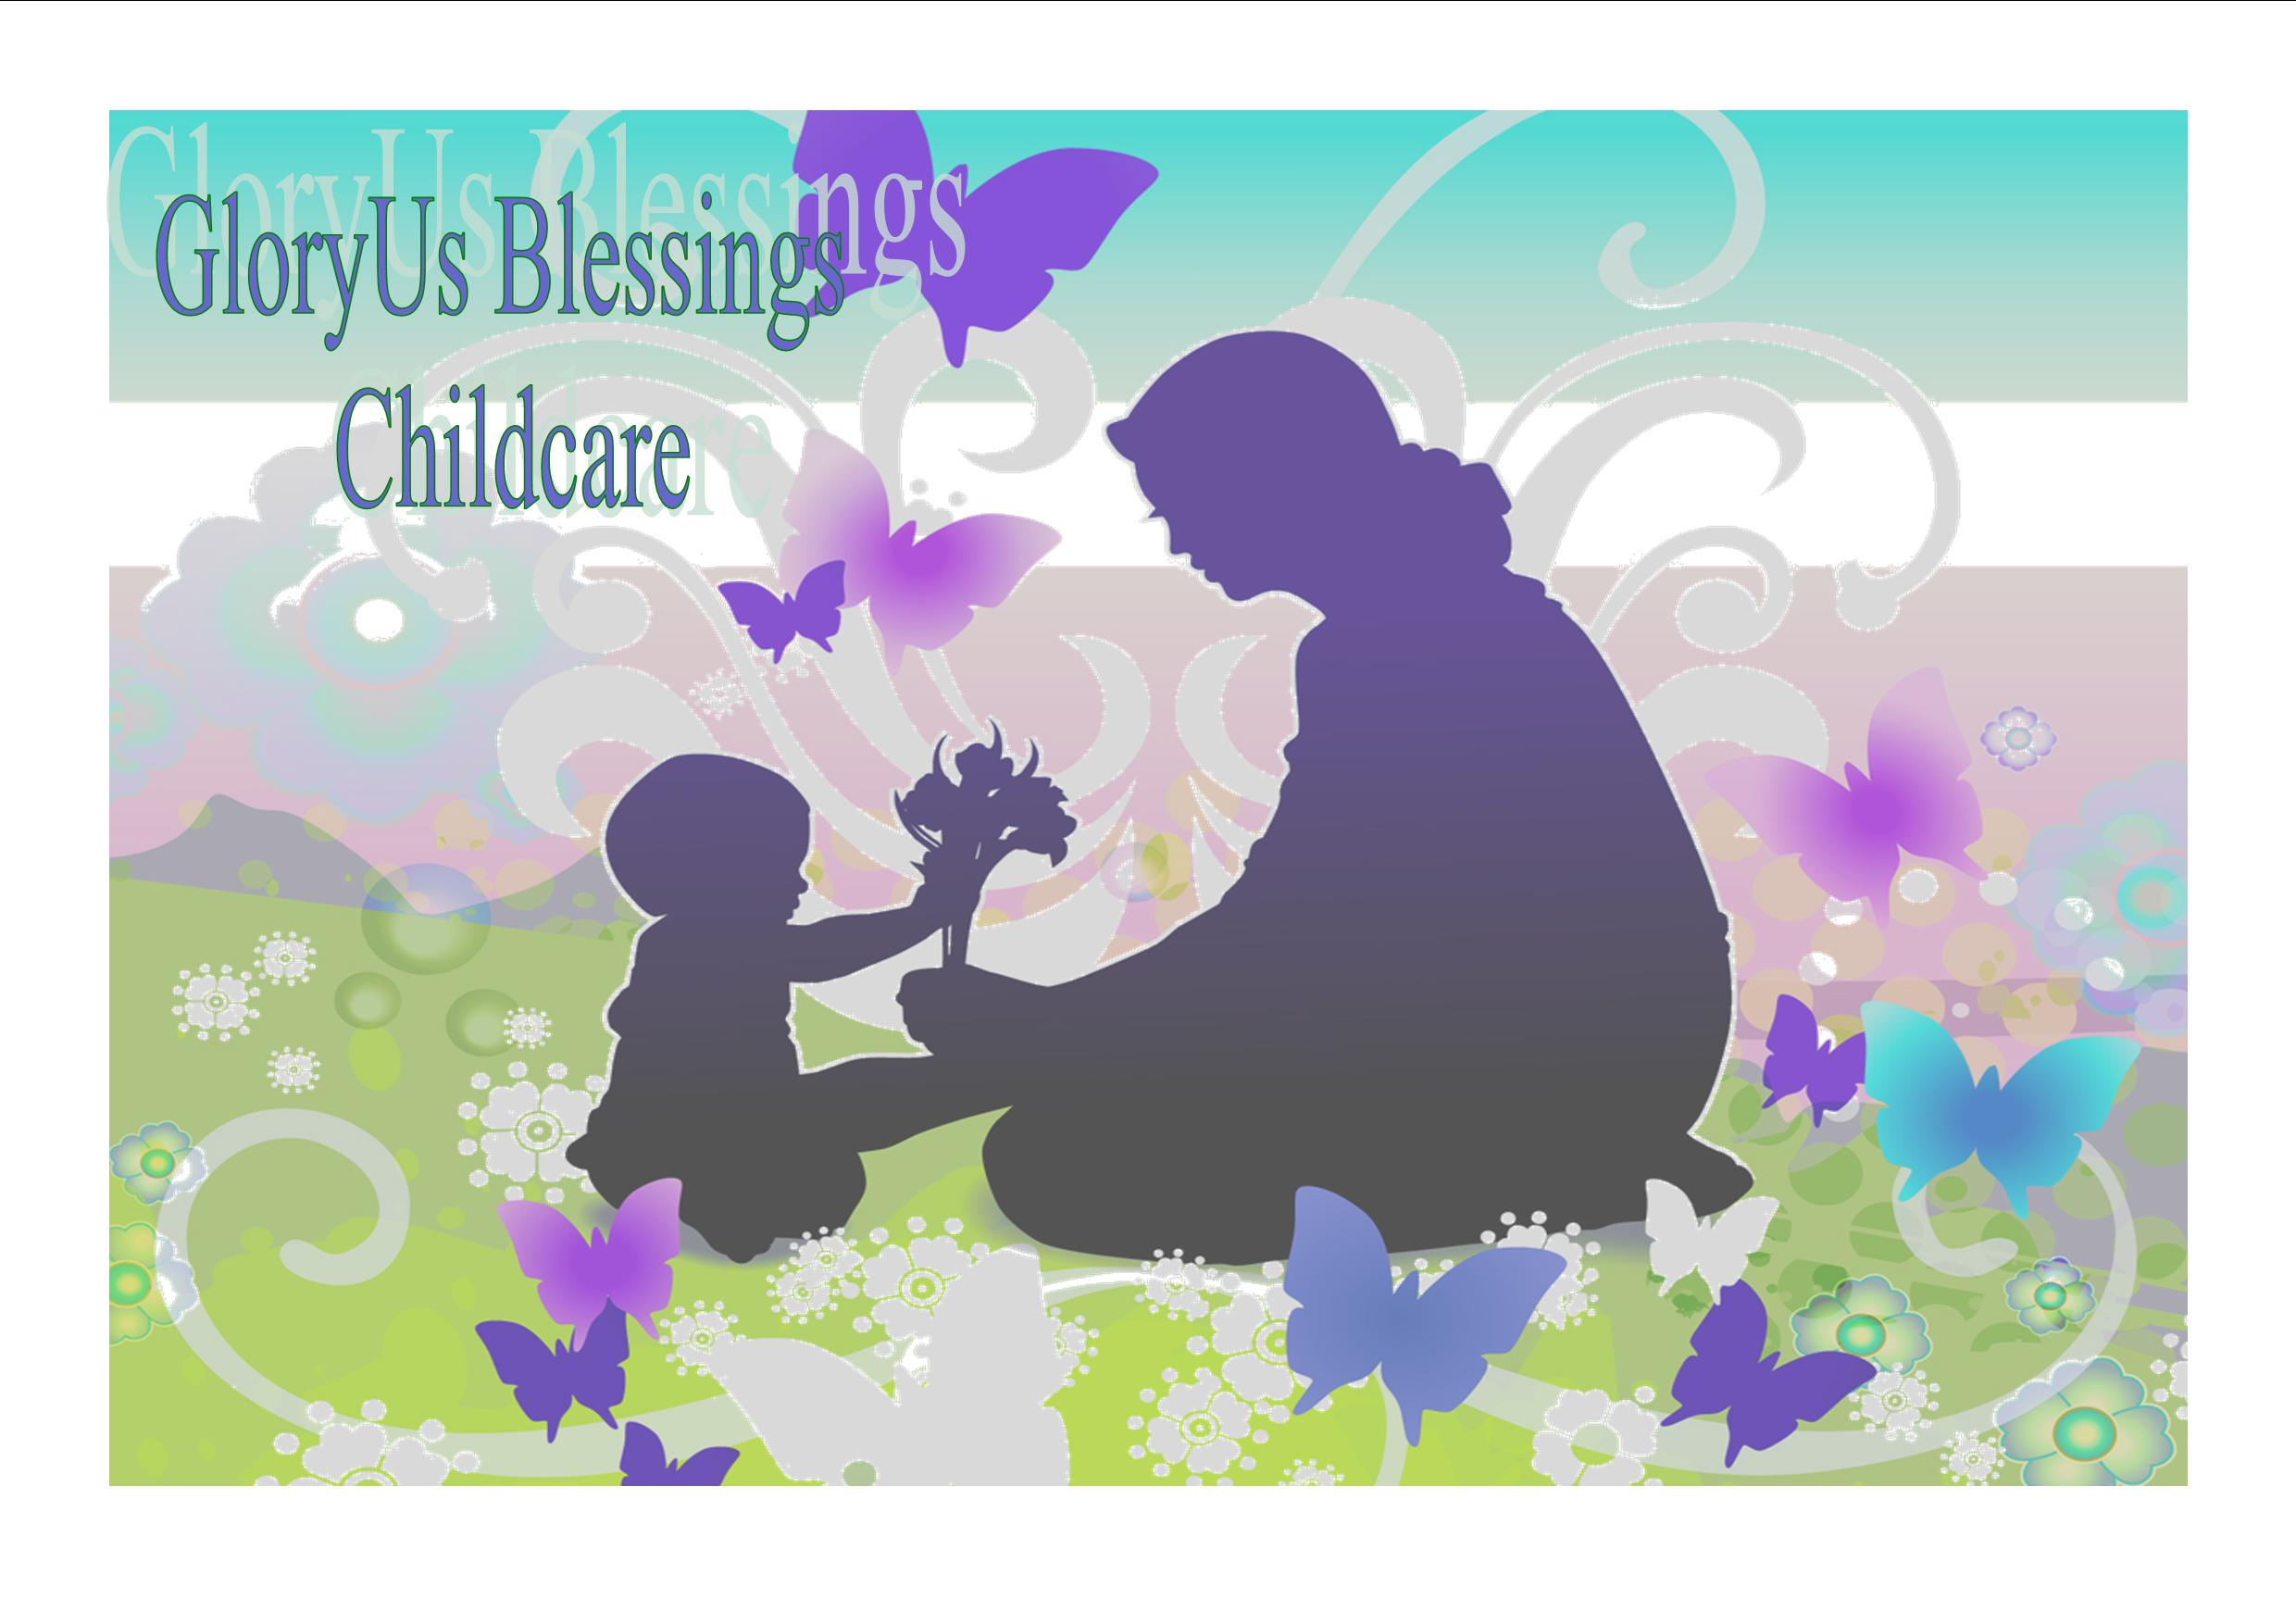 GloryUs Blessings Childcare